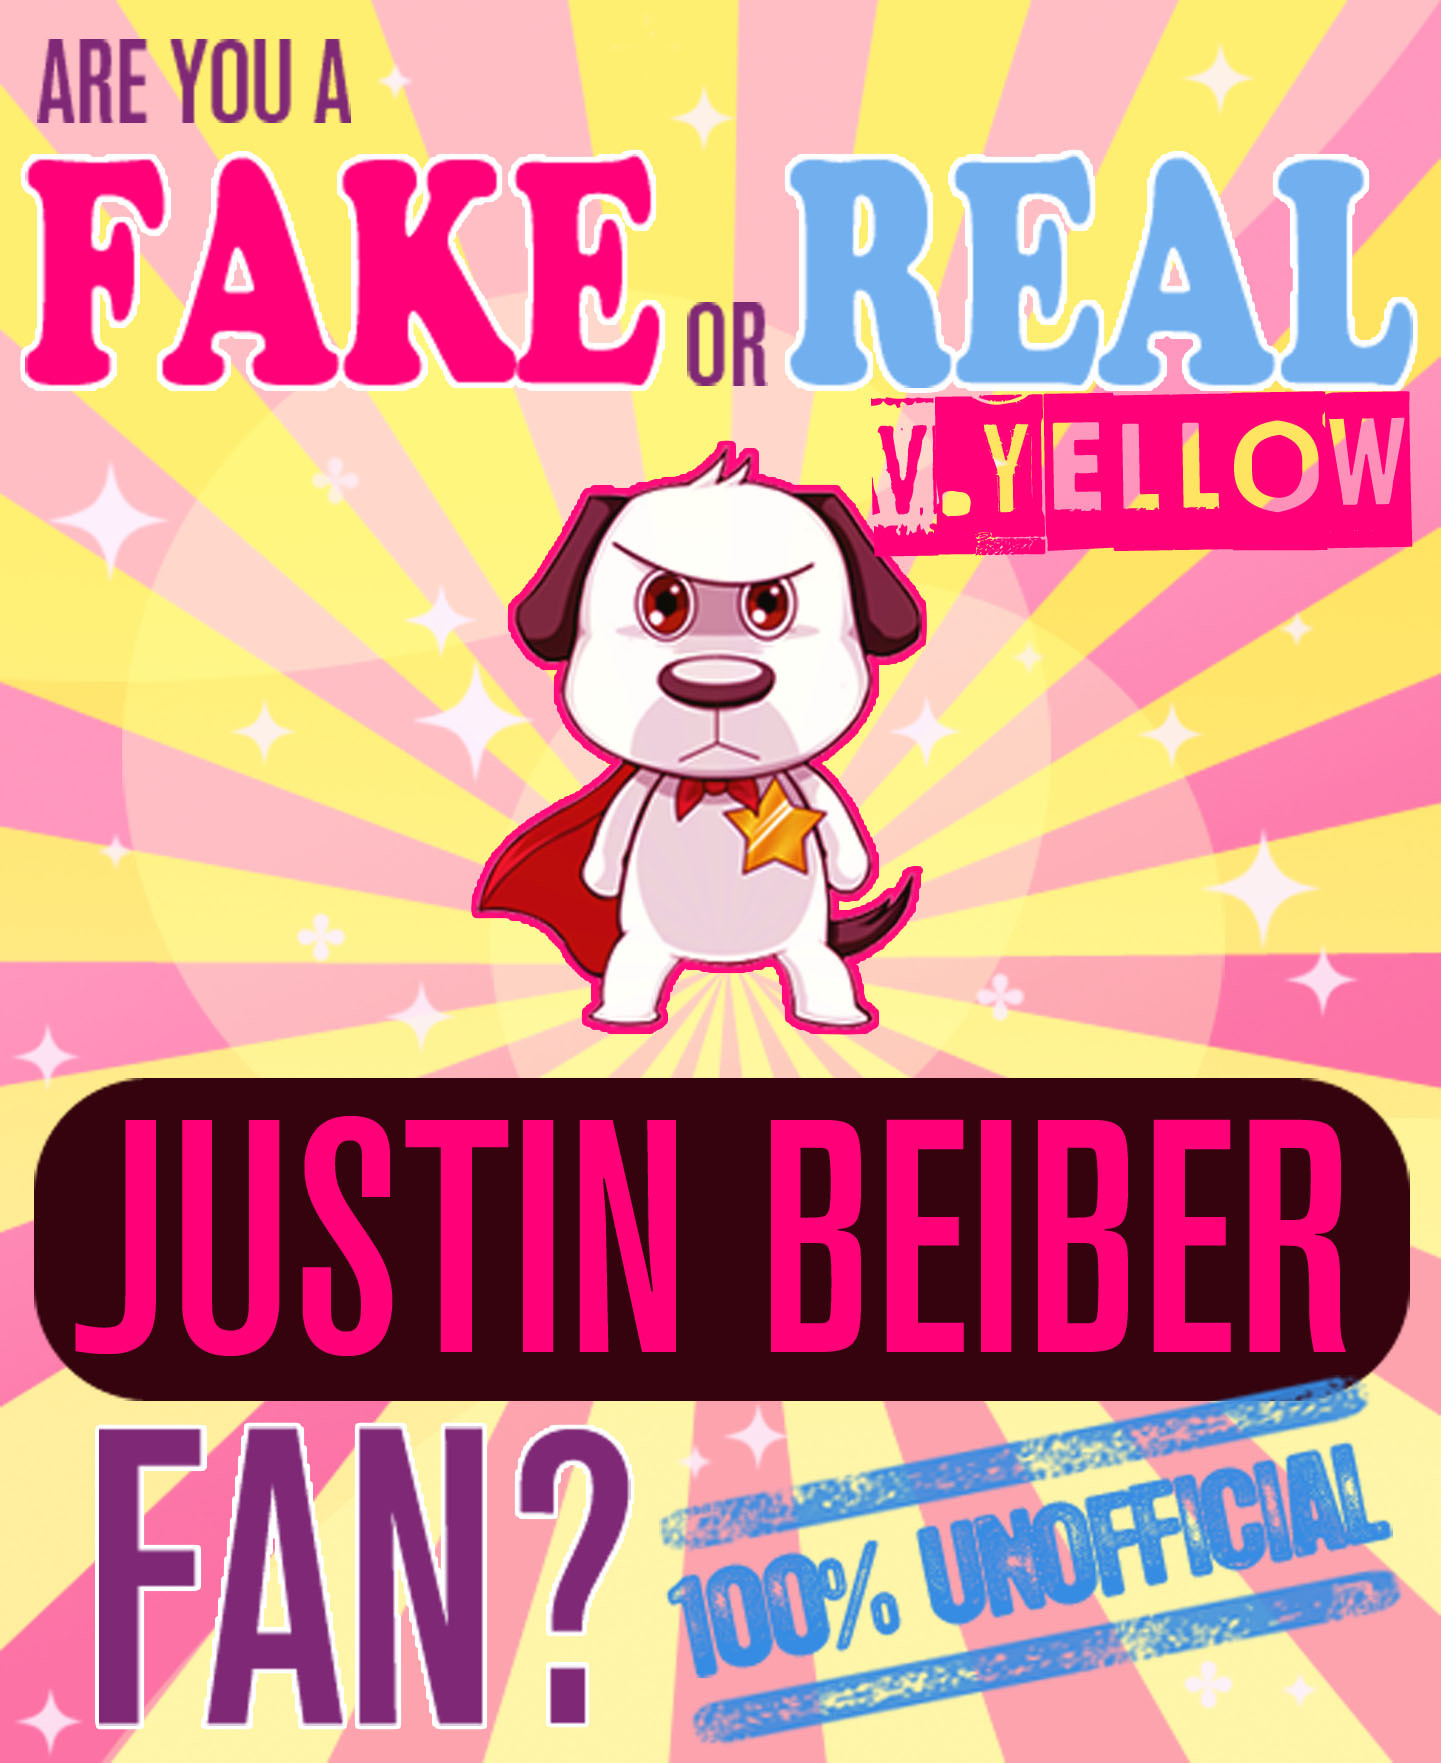 Are You a Fake or Real Justin Bieber Fan? Version Yellow: The 100% Unofficial Quiz and Facts Trivia Travel Set Game